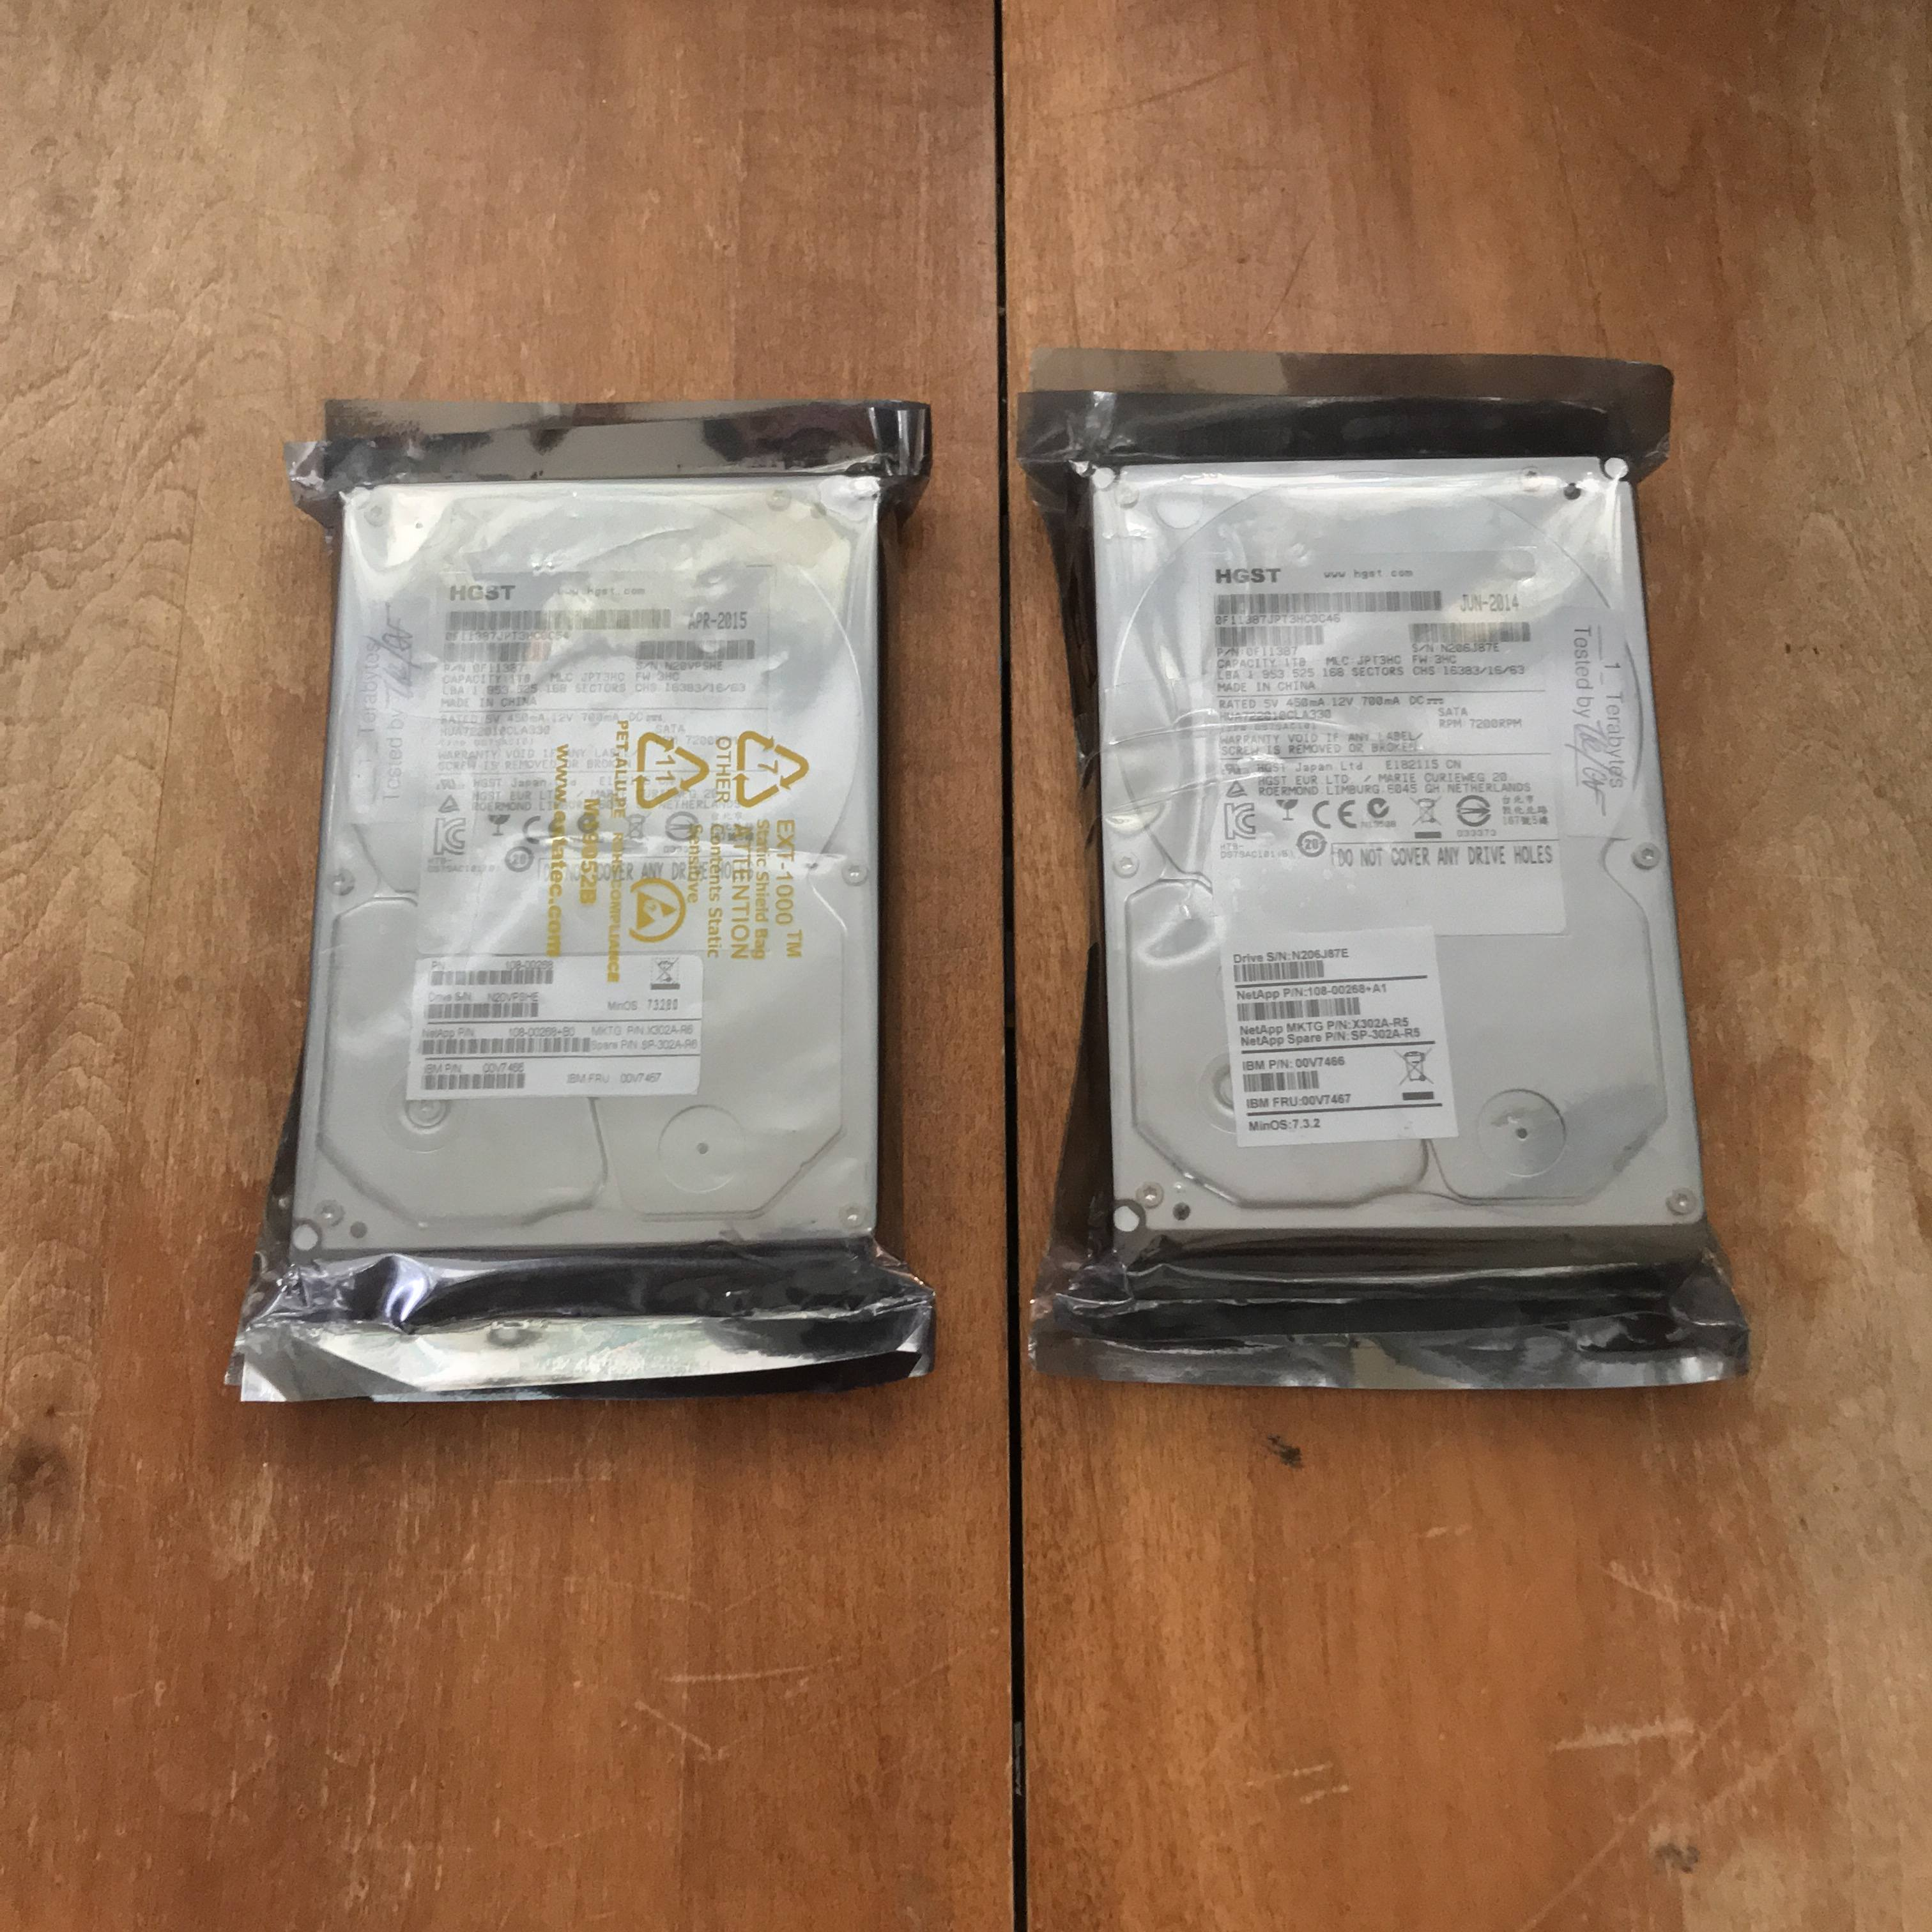 Online Find: Two 1TB Hard Drives